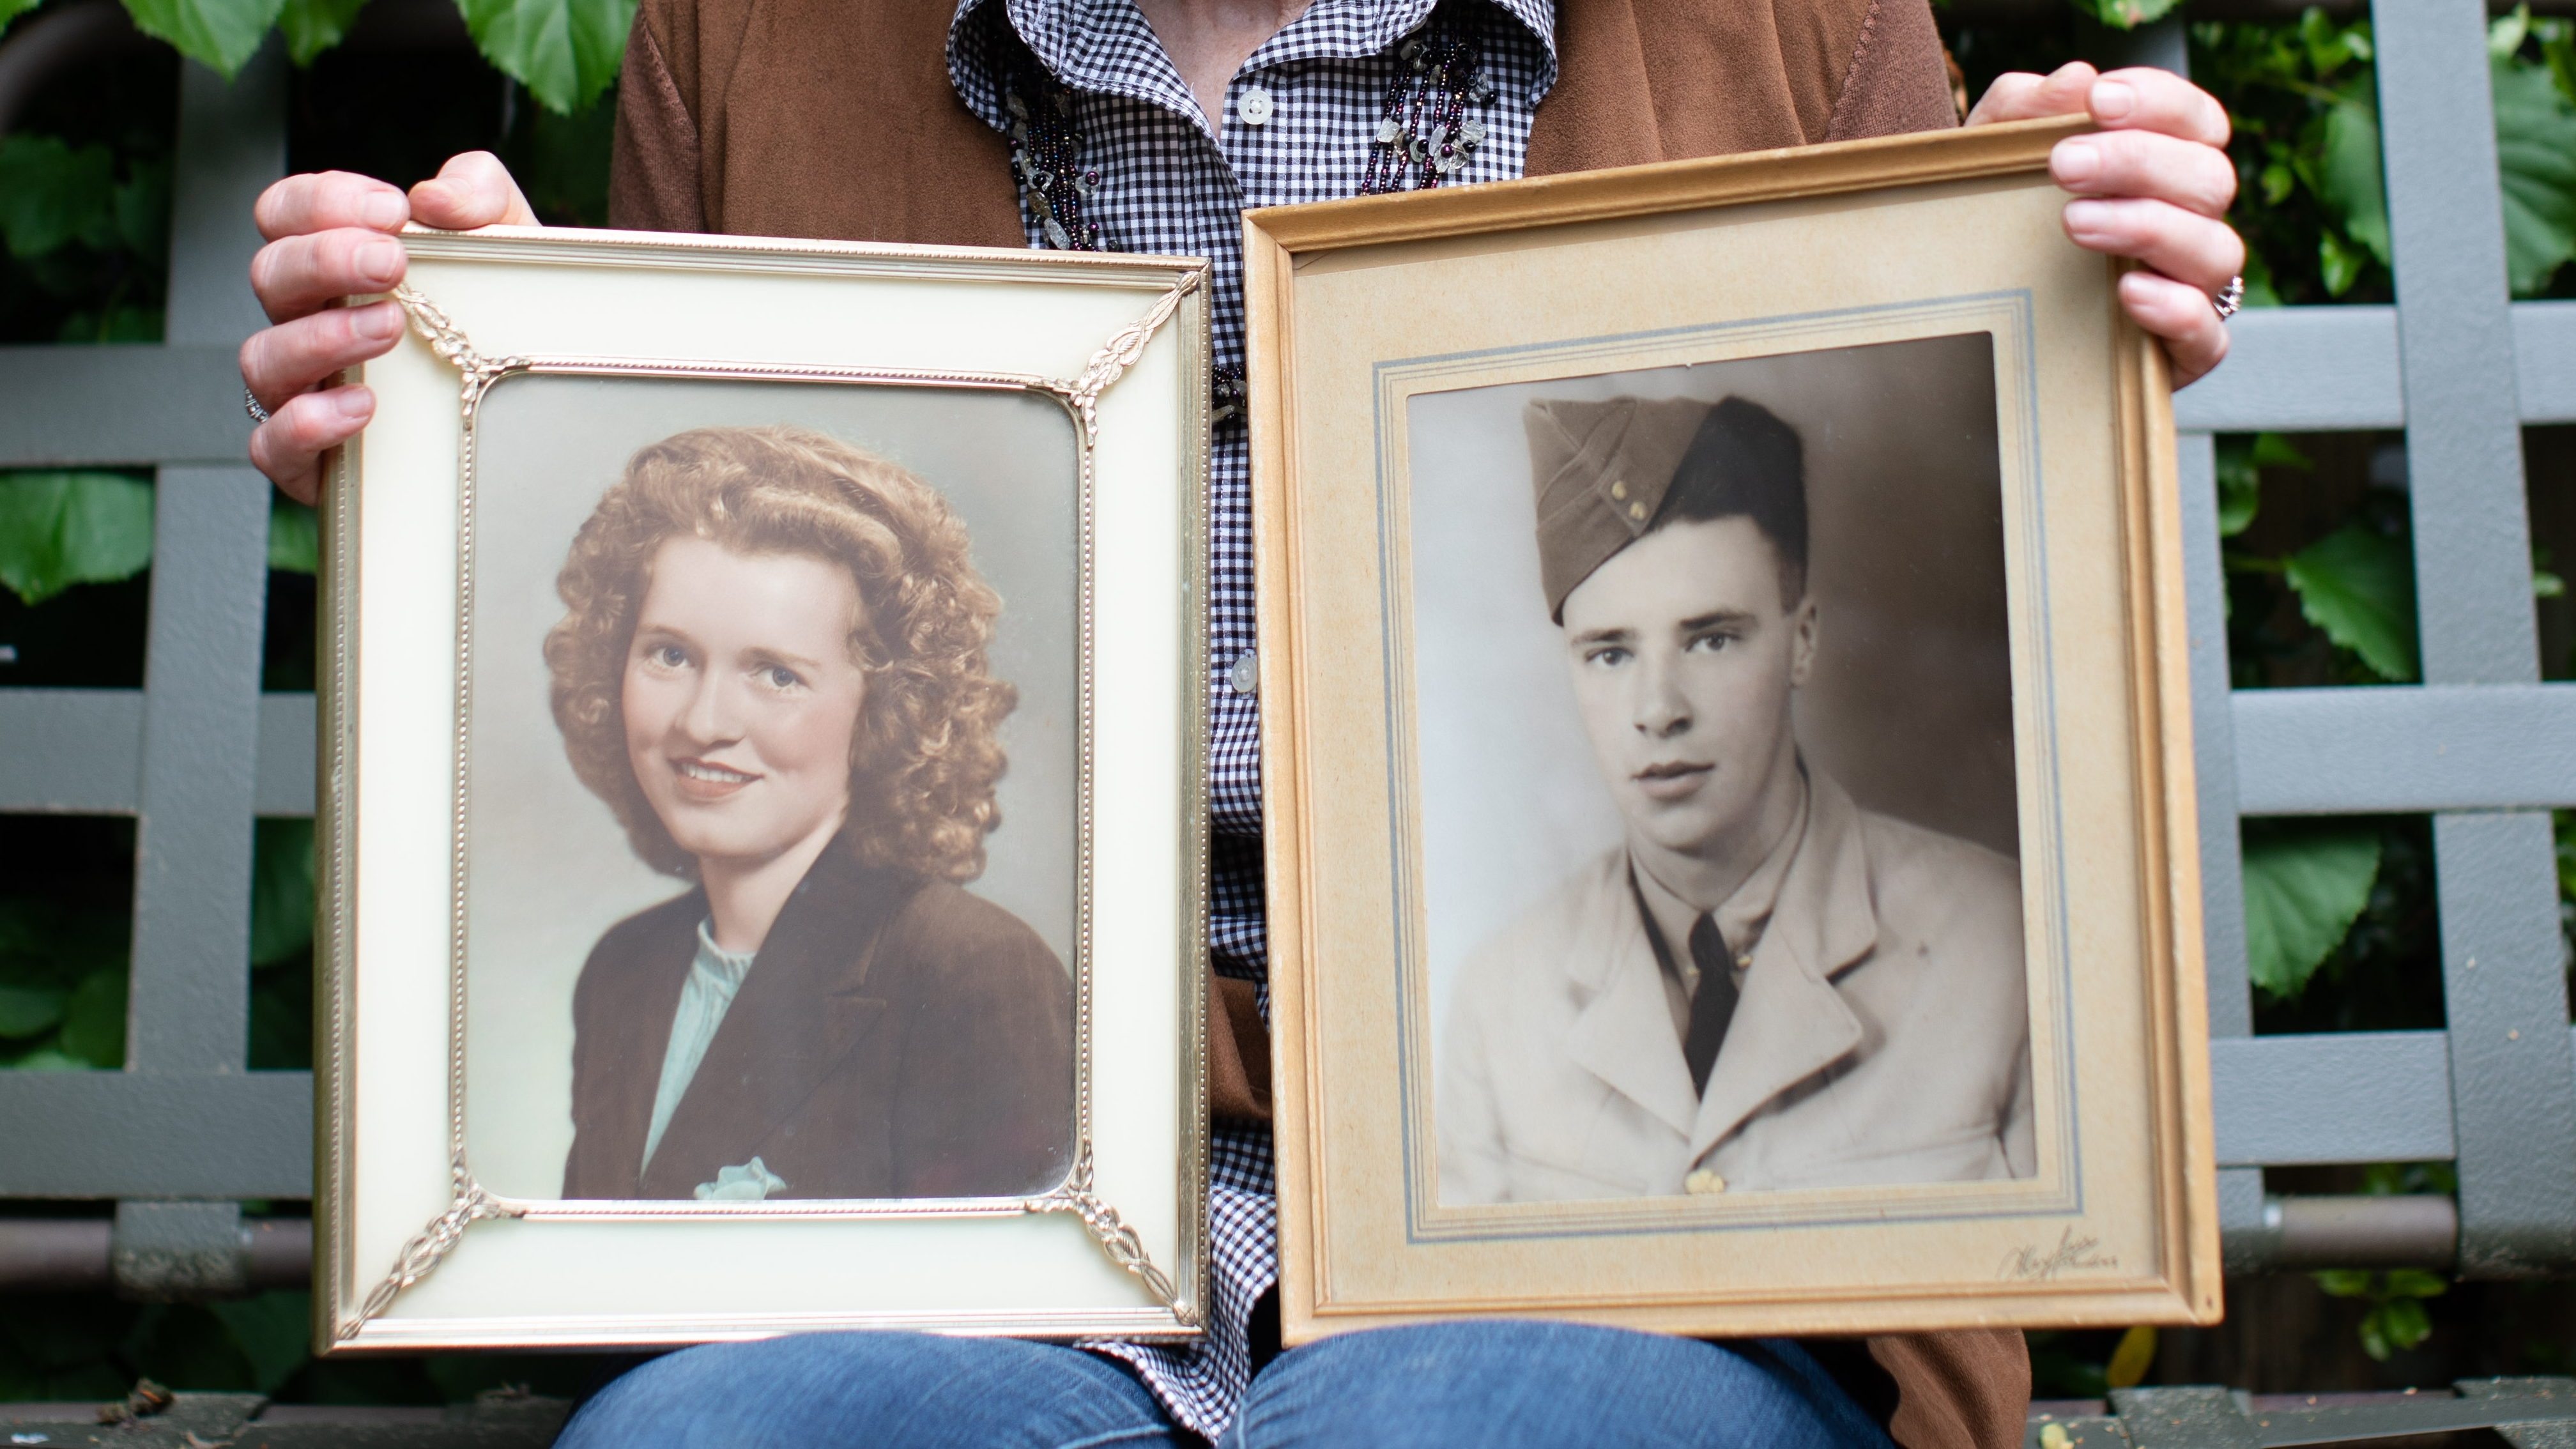 Juanita and Howard Robinson met shortly after the Second World War and were married in 1951. The couple passed away from COVID-19 within hours of each other in a North Vancouver care home in April 2020. (Maggie MacPherson)